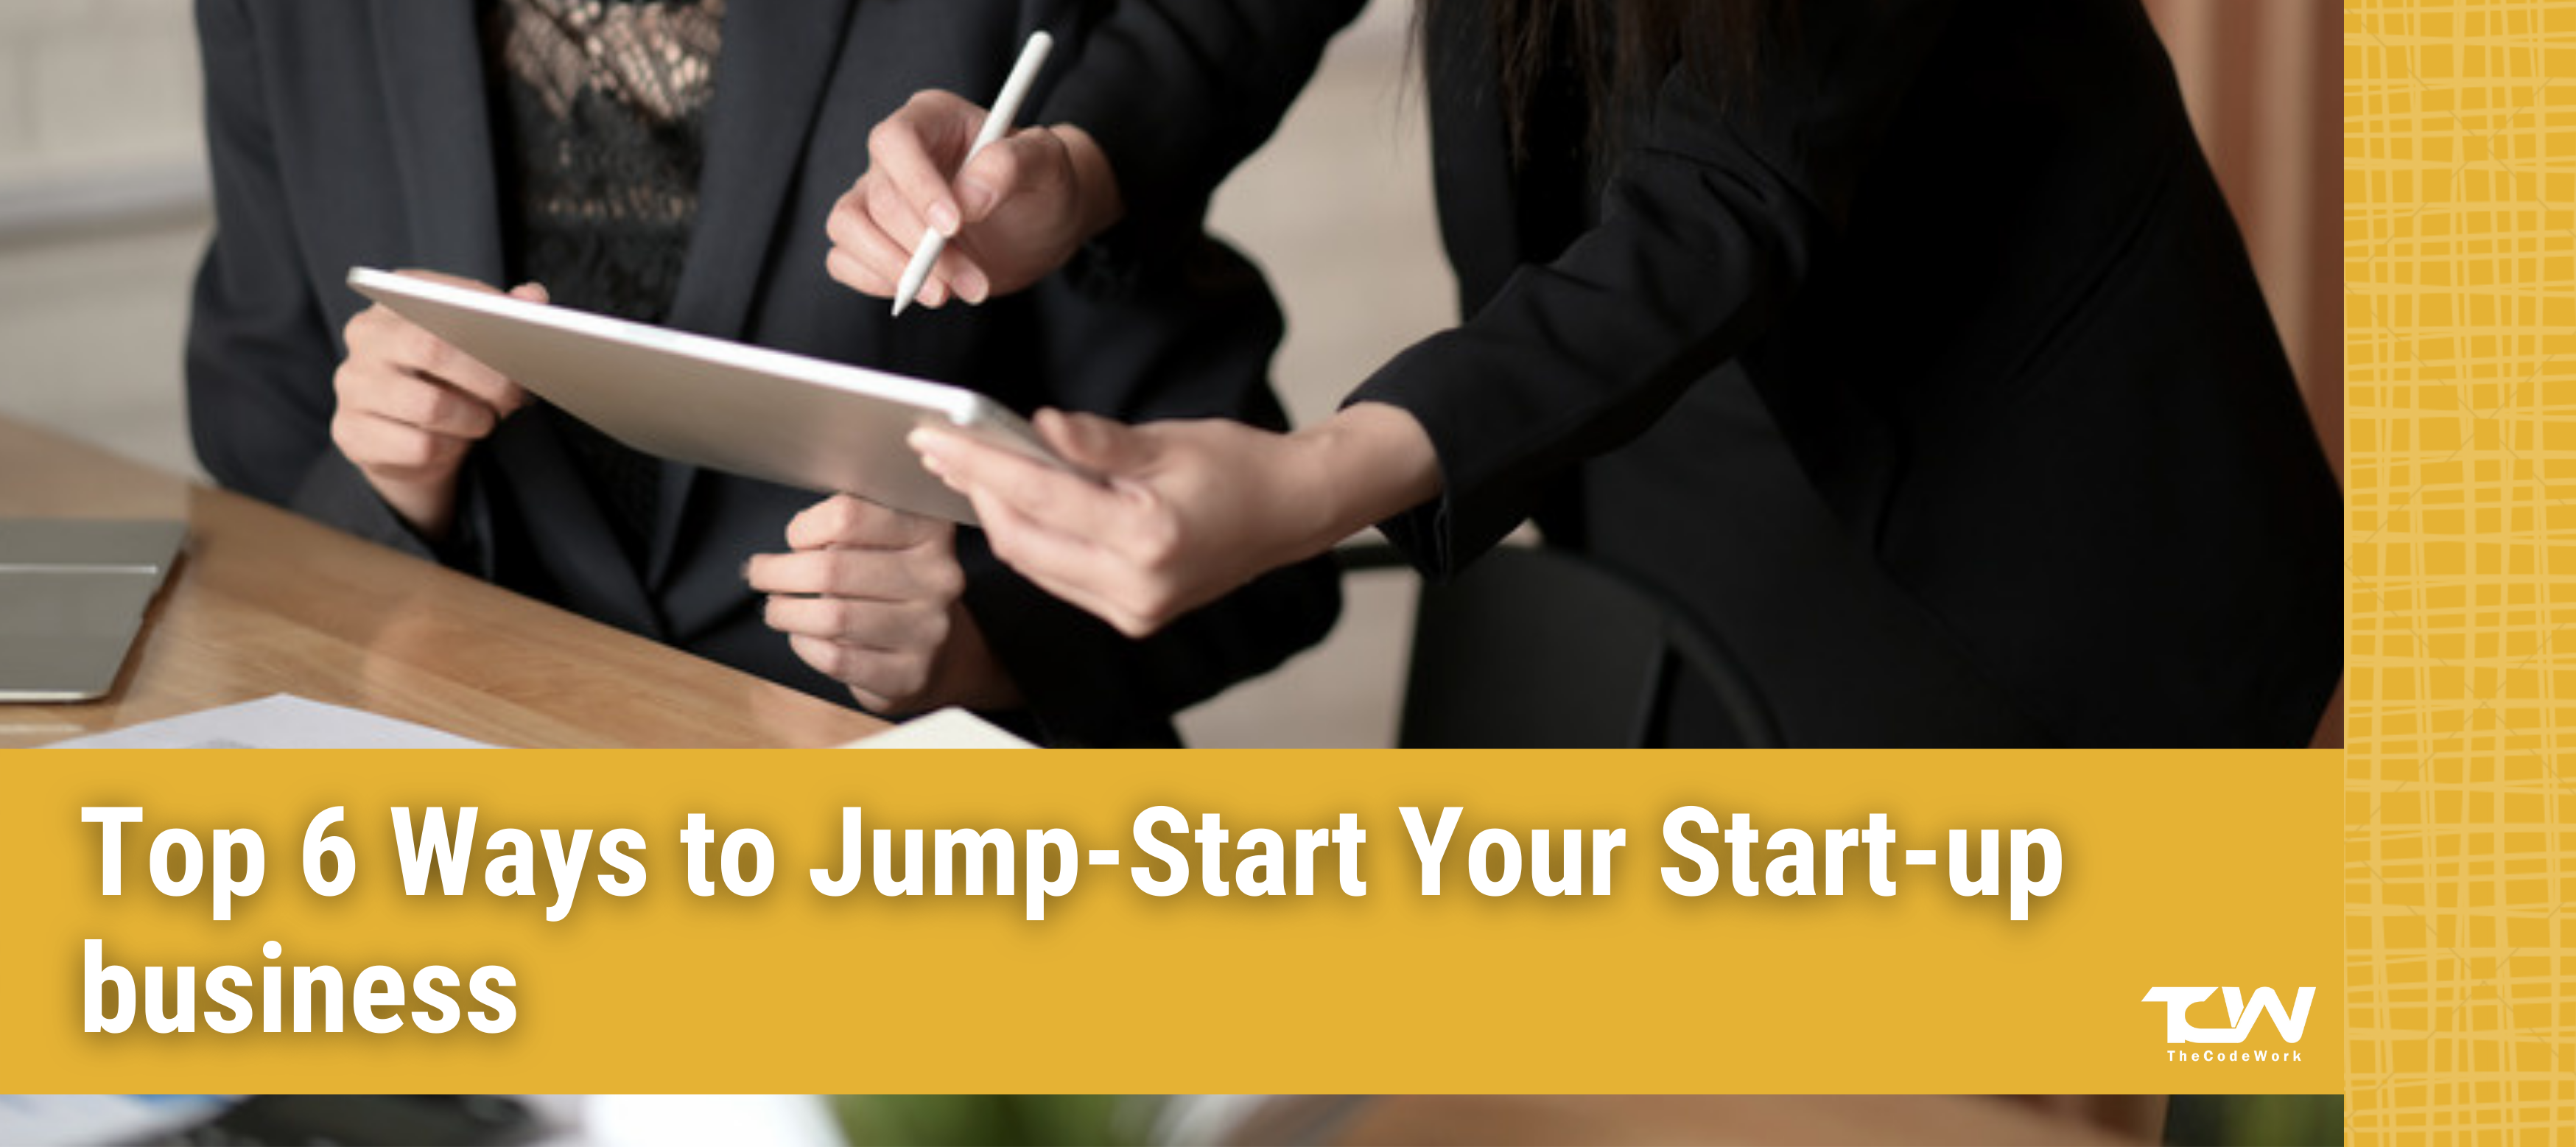 Top 6 Ways to Jump-Start Your Start-up business